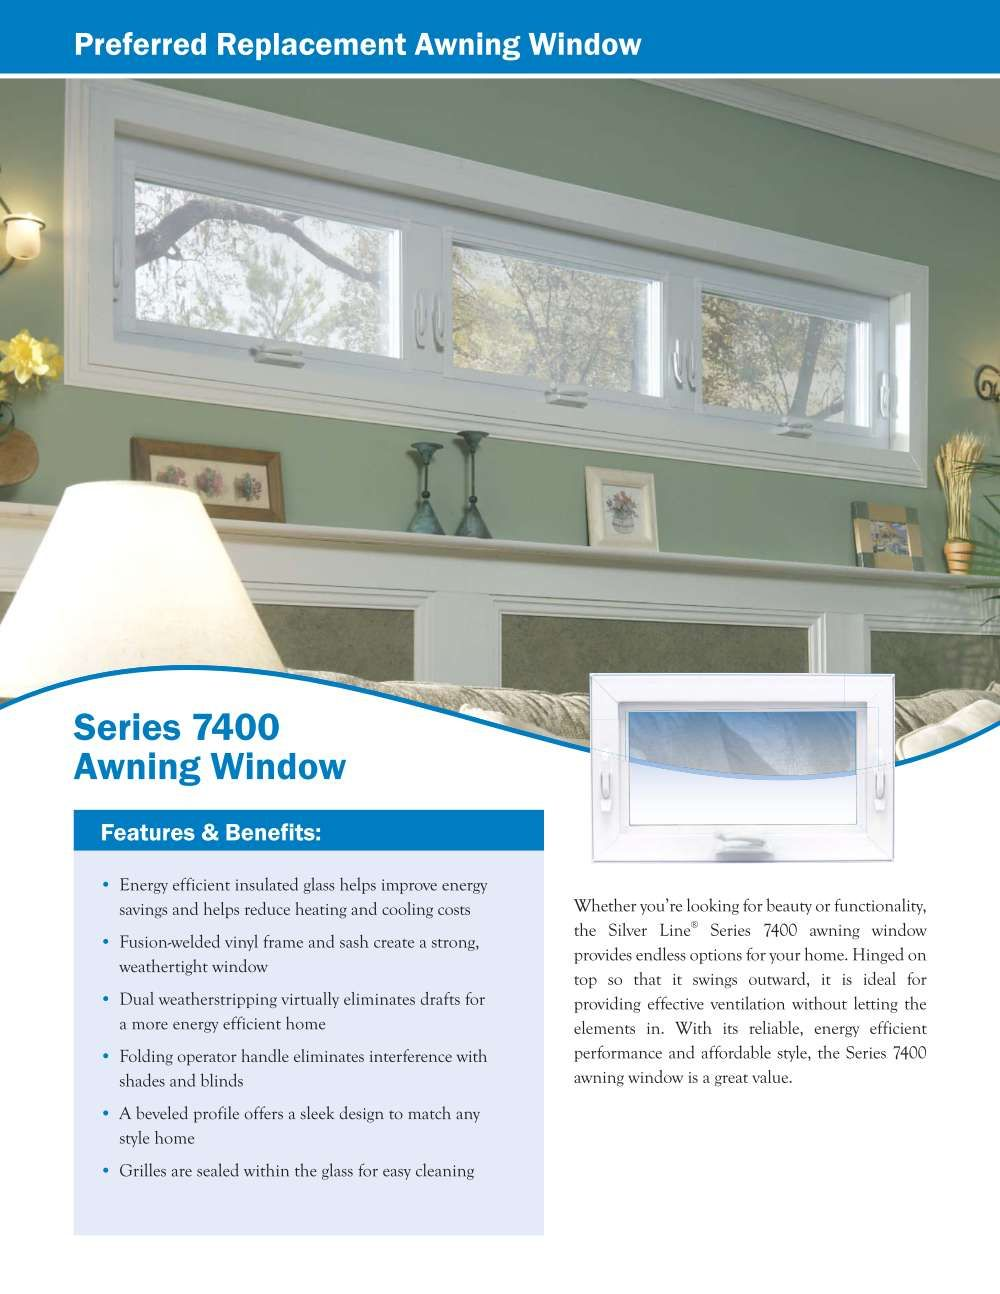 Blinds For Andersen Windows Andersen Windows Silver Line Windows